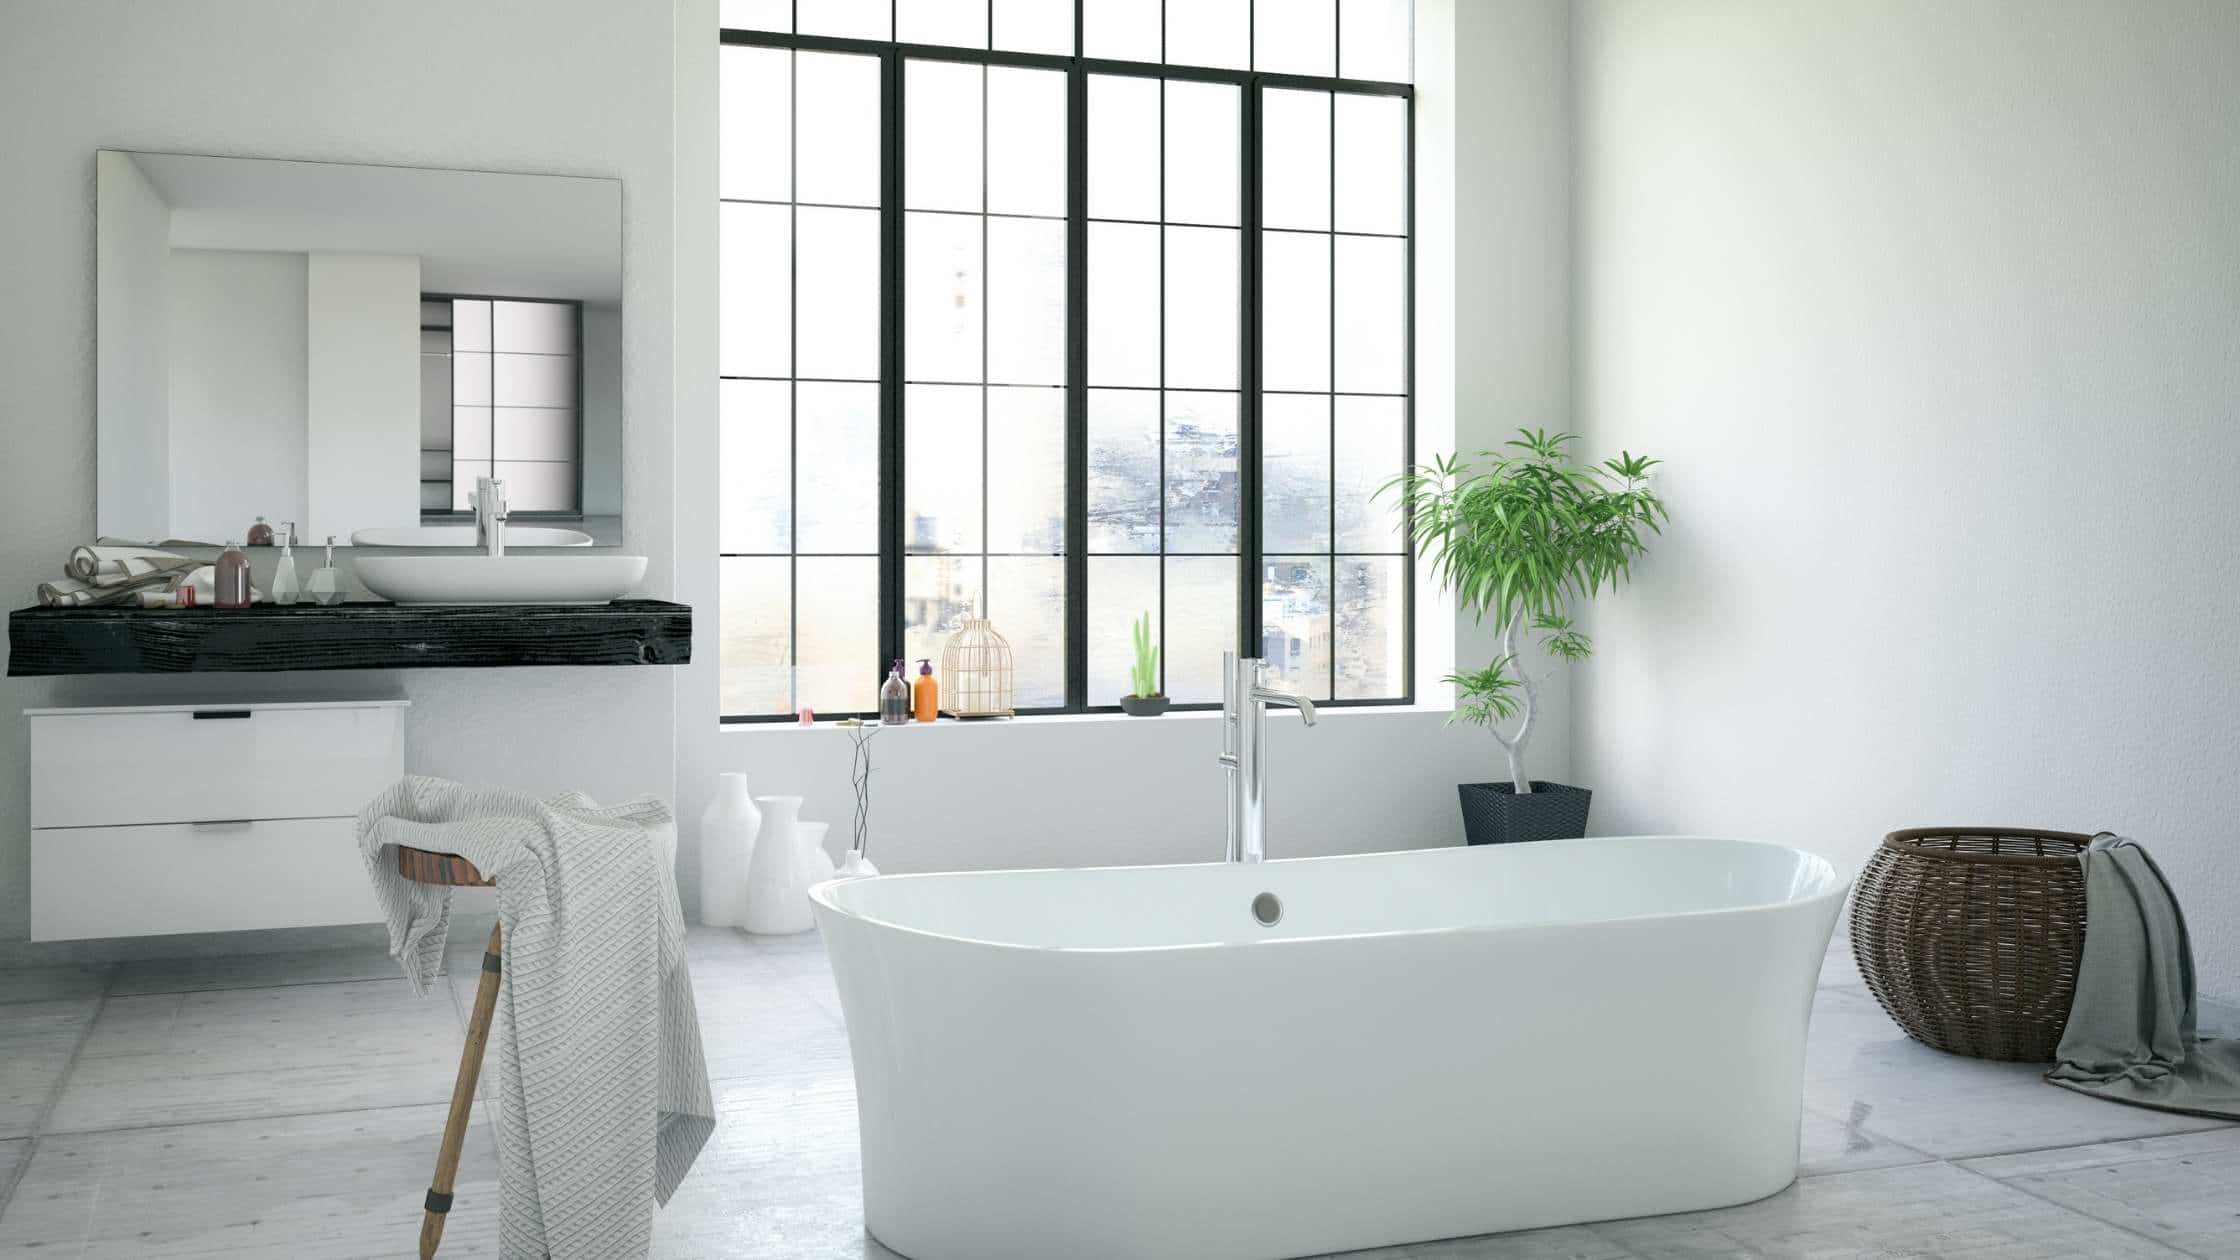 8 Easy Ways to Update a Bathroom Without Remodeling